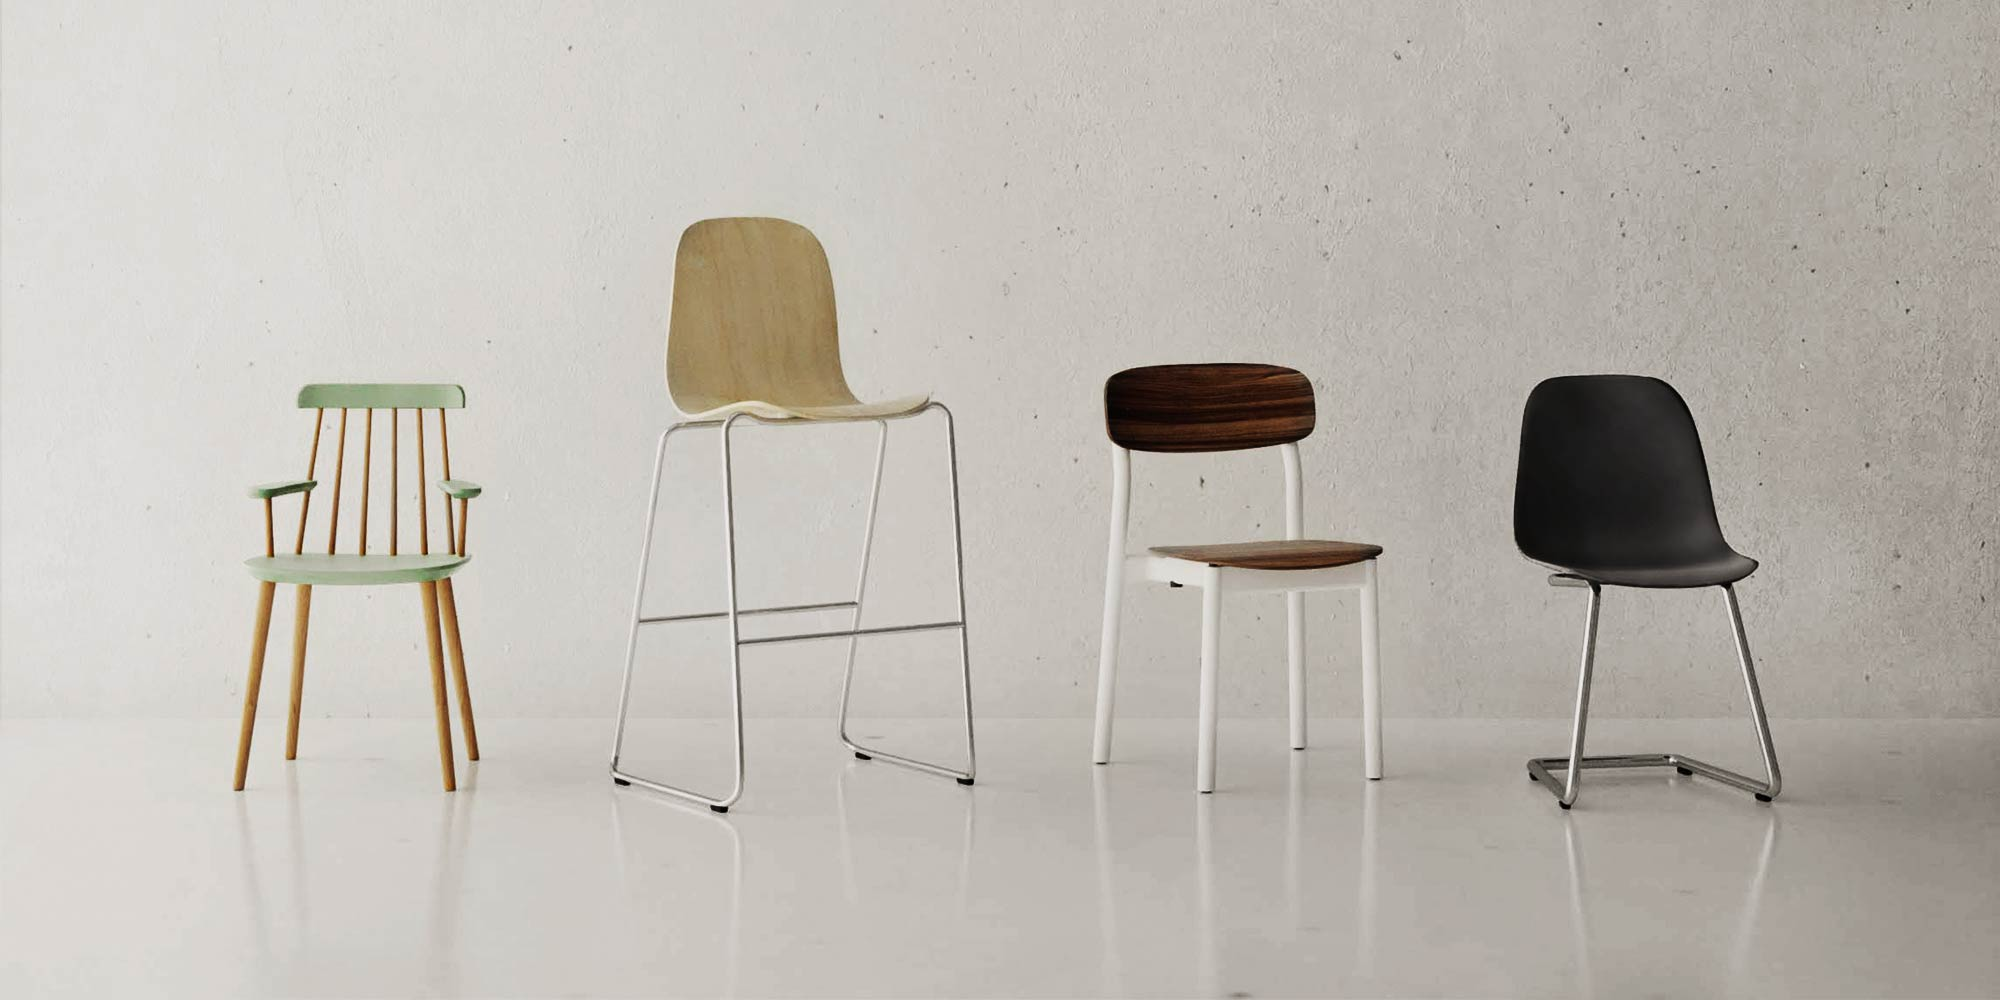 multiple wooden chairs with different leg options